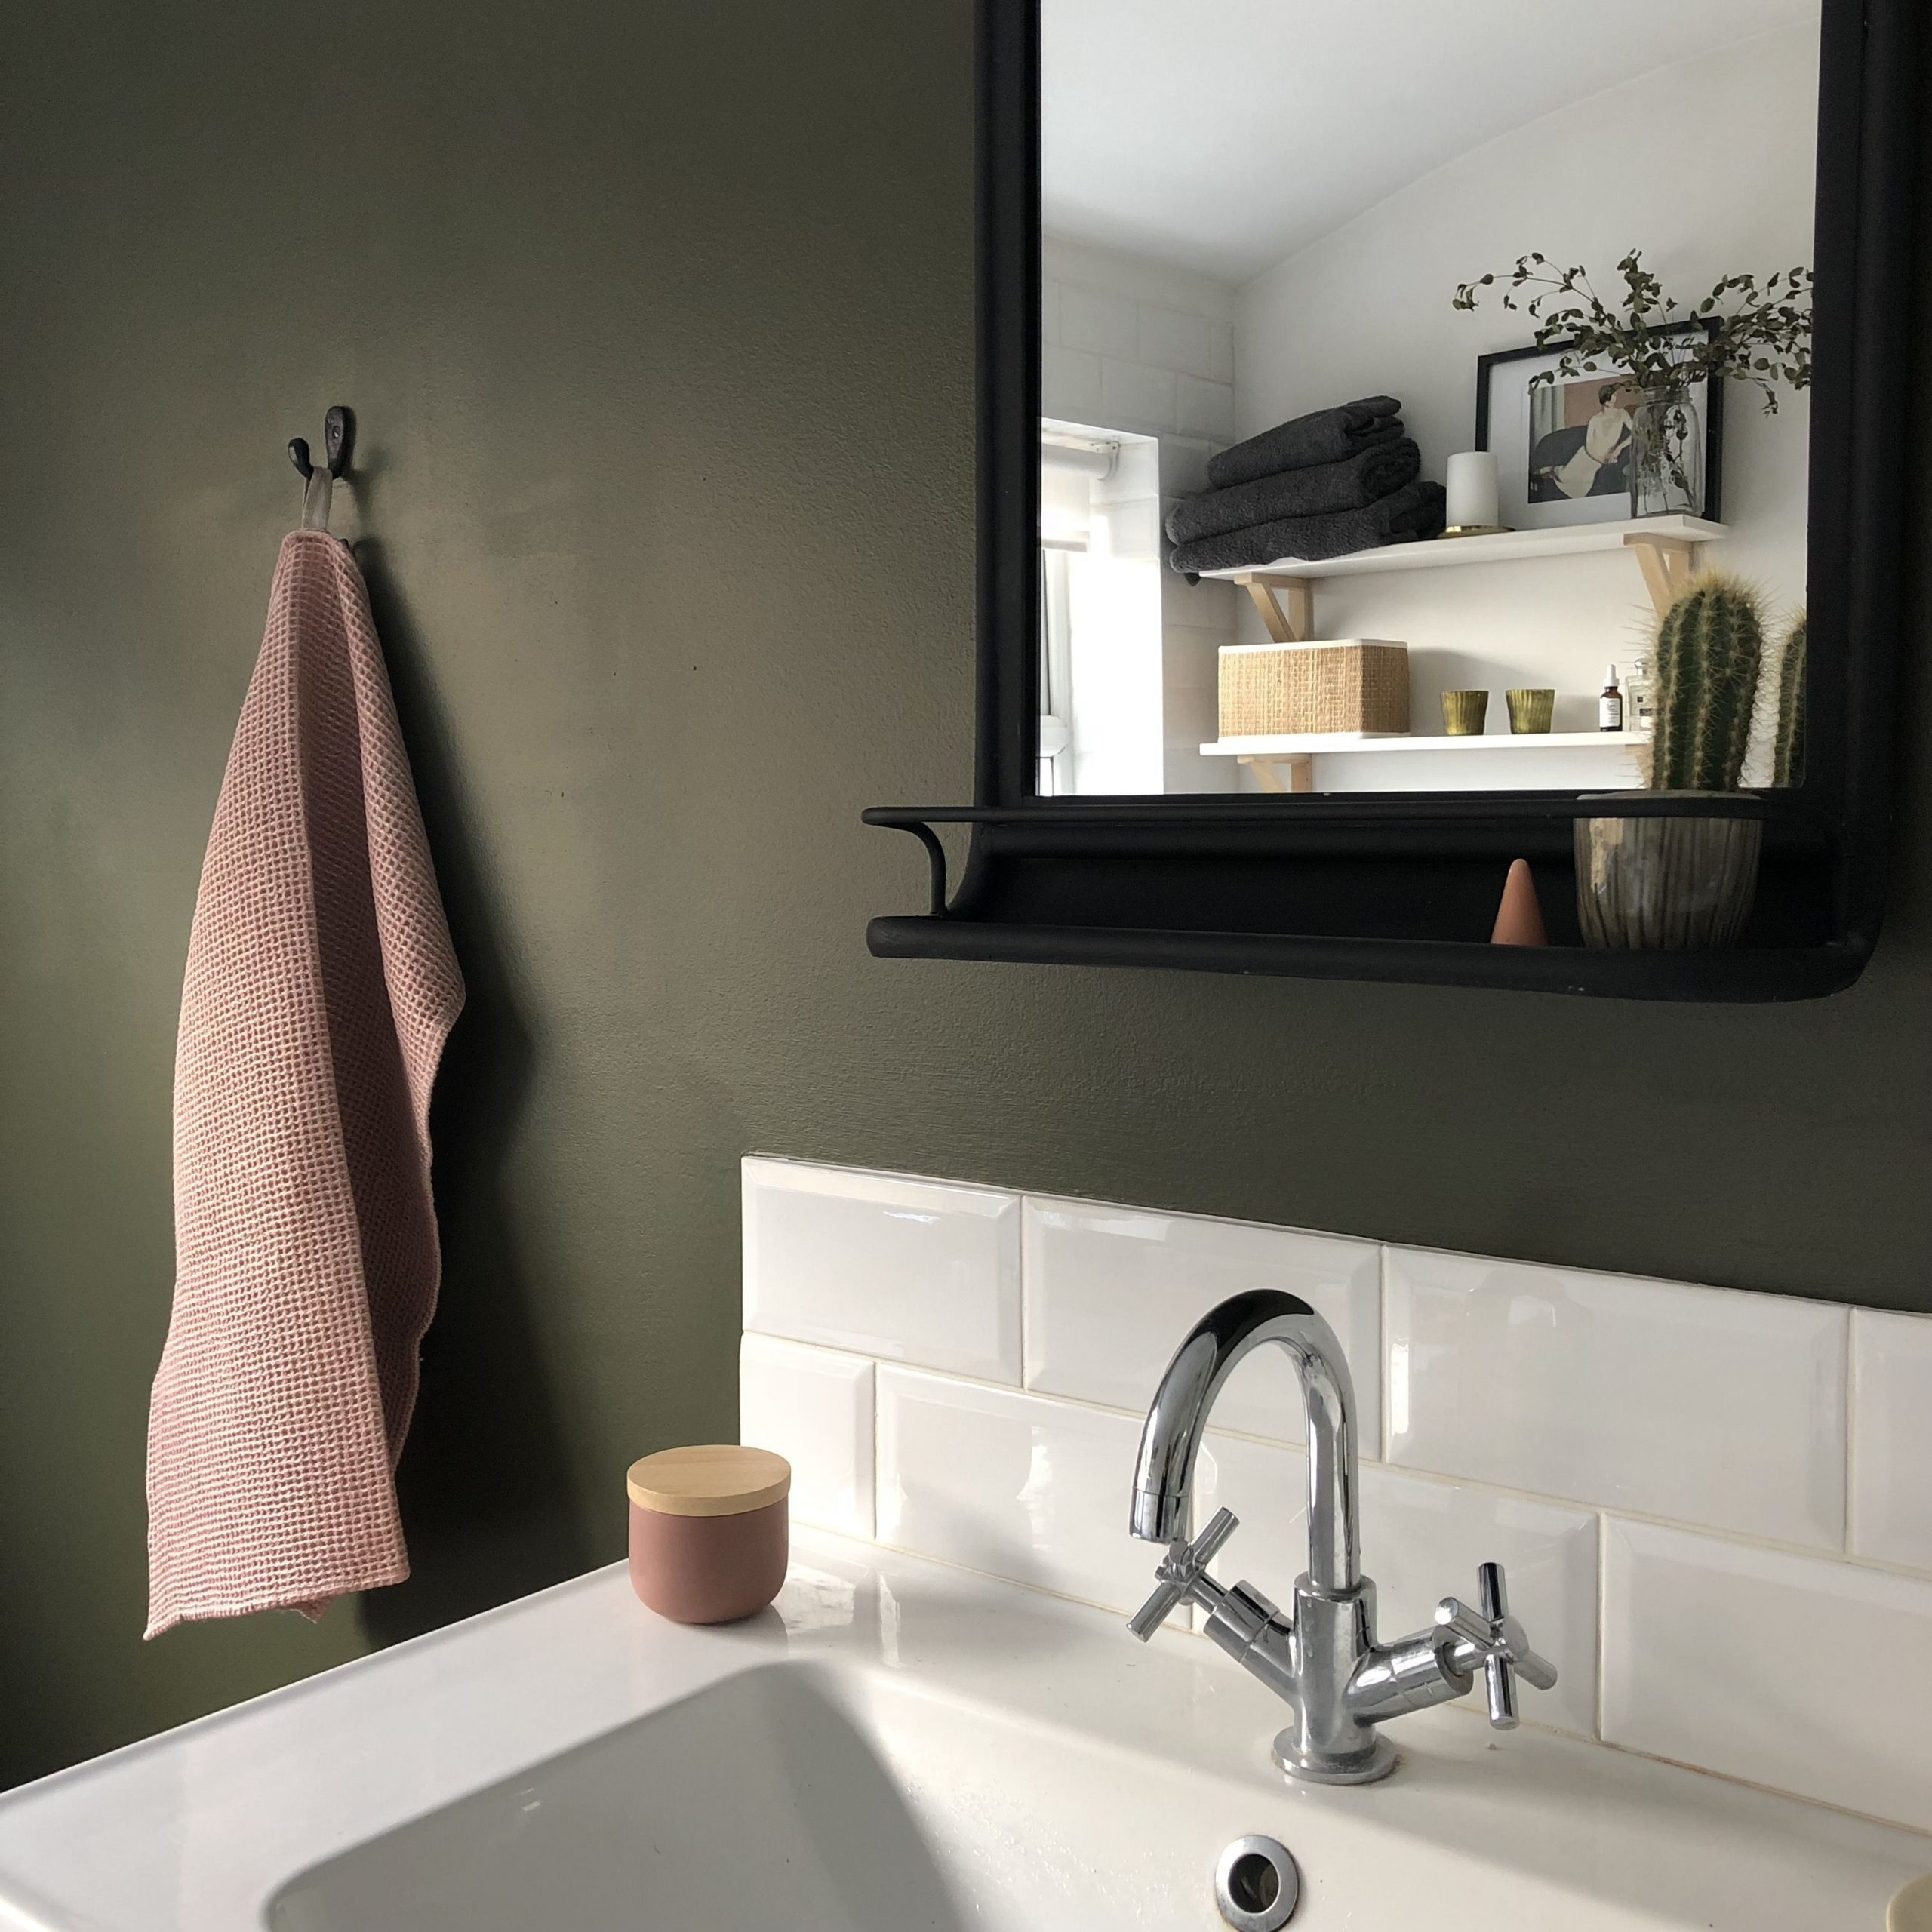 Updating The Bathroom With A Little Greene — Inside Her Home 10+ Little Greene Bathroom Inspirations